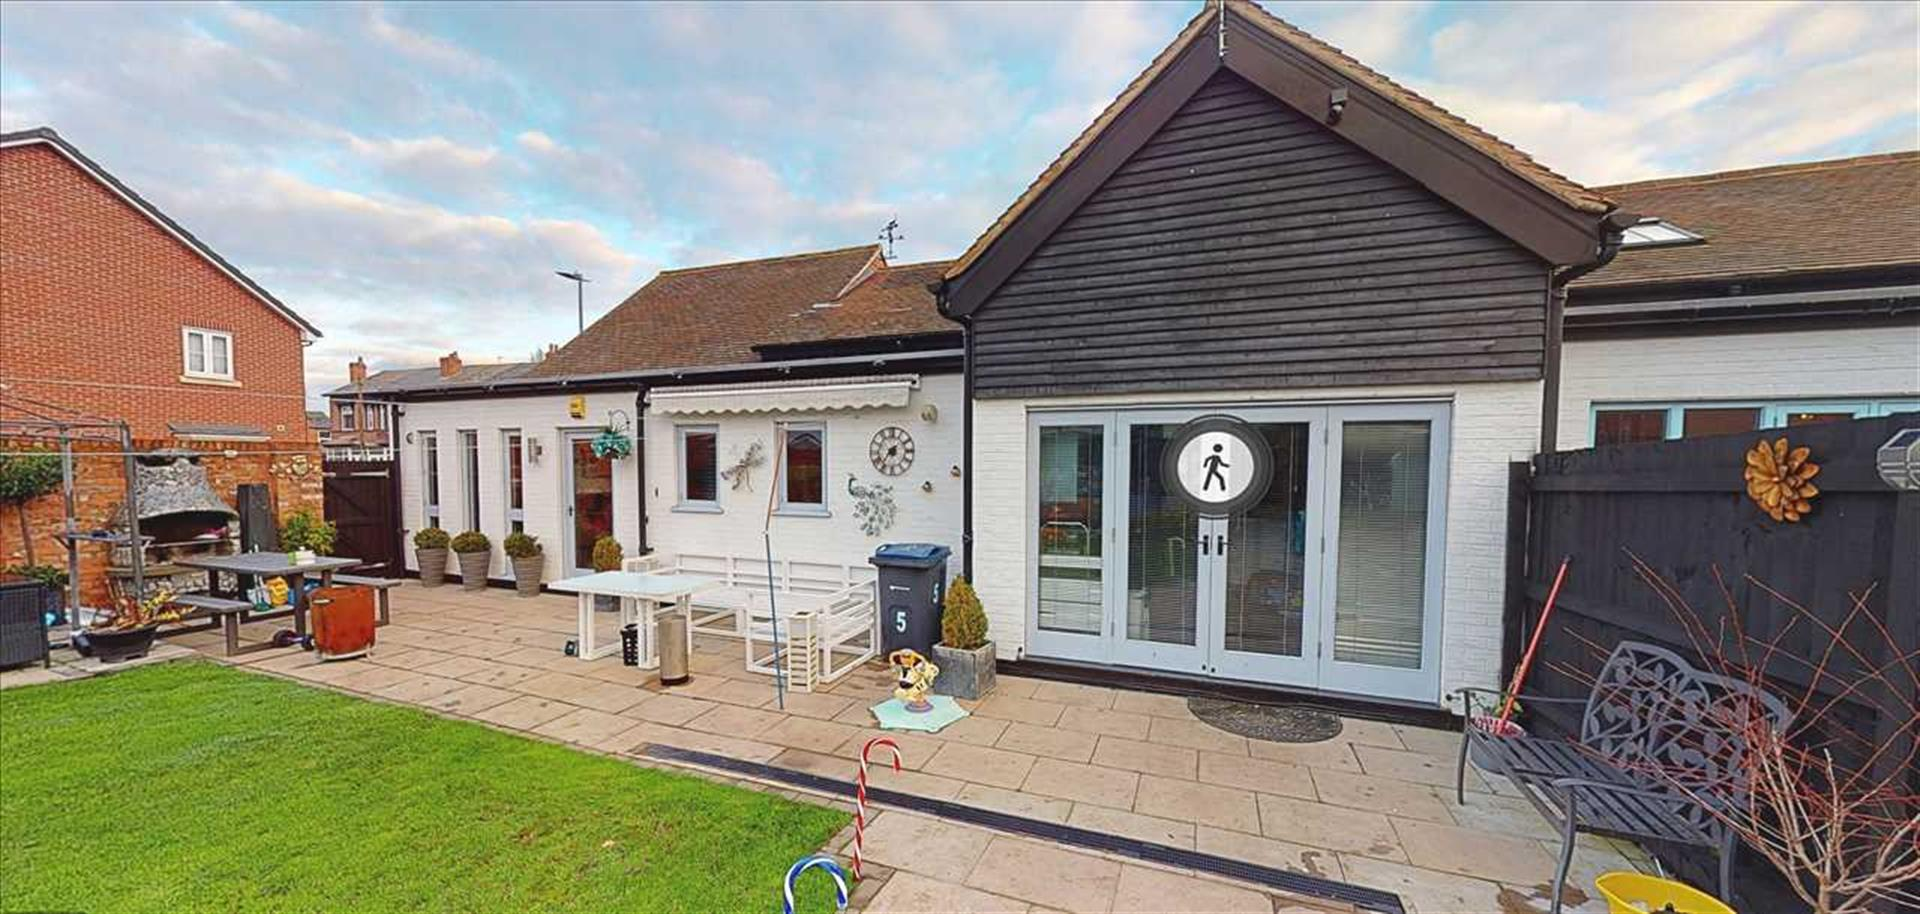 3 Bedroom Barn Conversion Character Property For Sale - Image 10